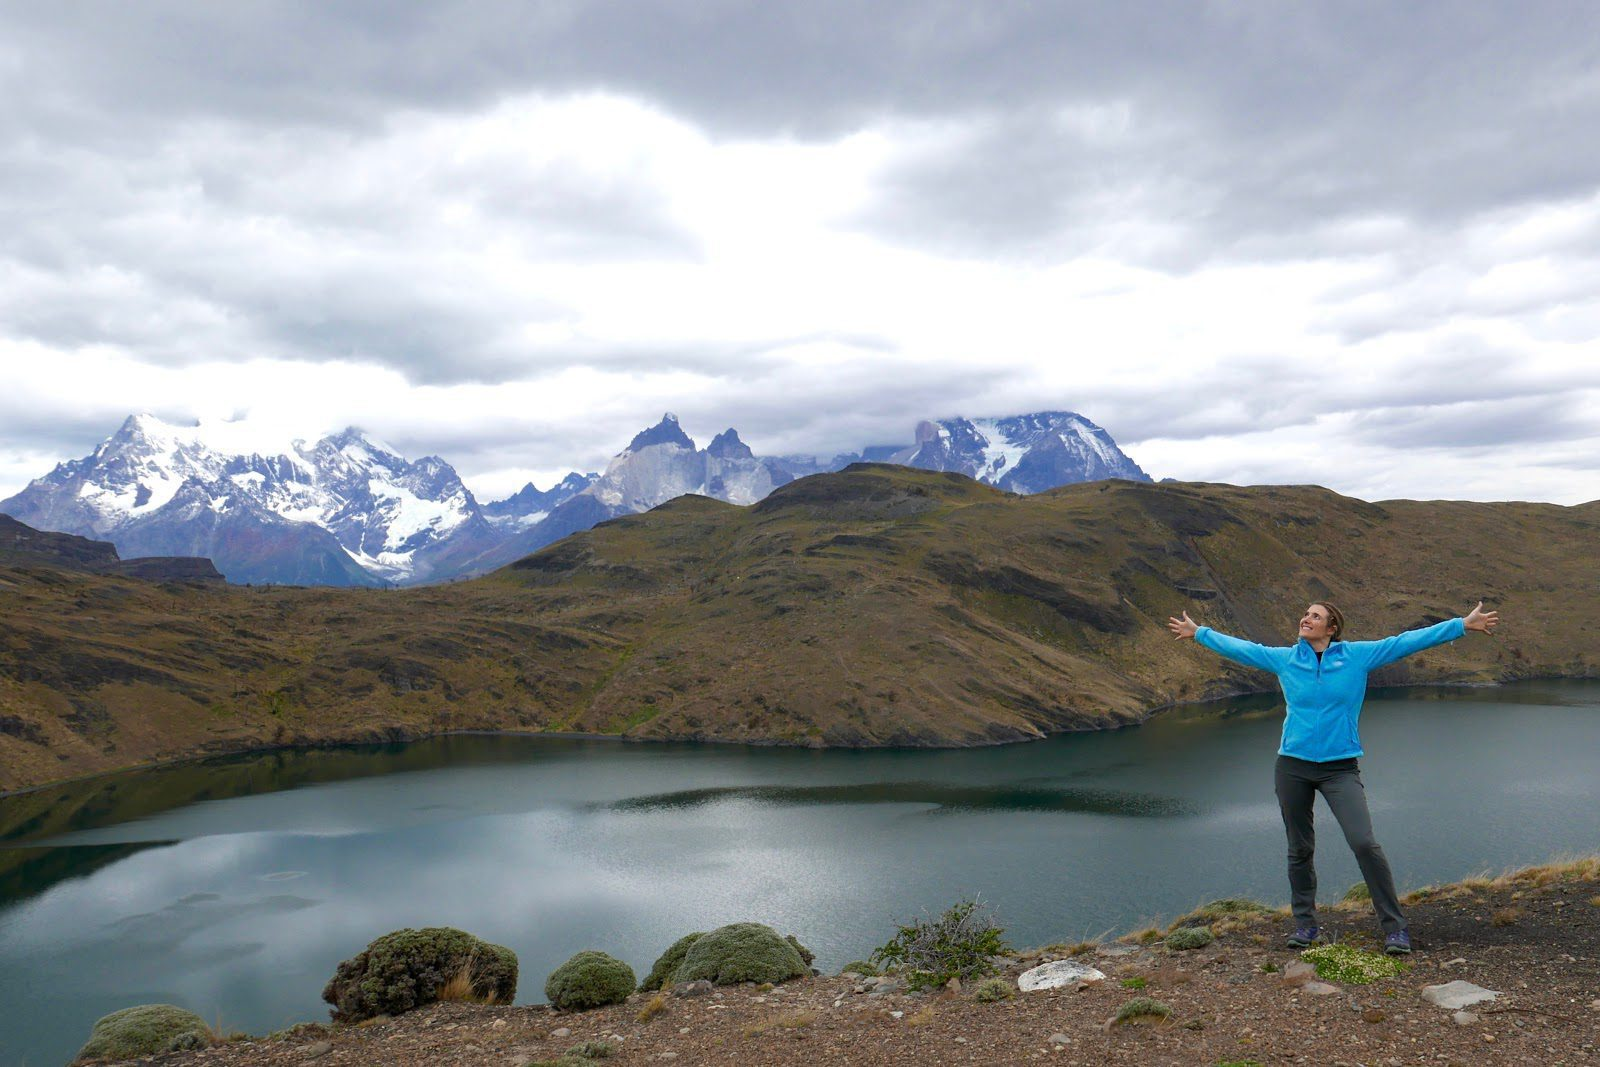 a woman in a blue jacket stretches her arms wide before jagged snow-capped mountains, rugged hills, and a massive lake